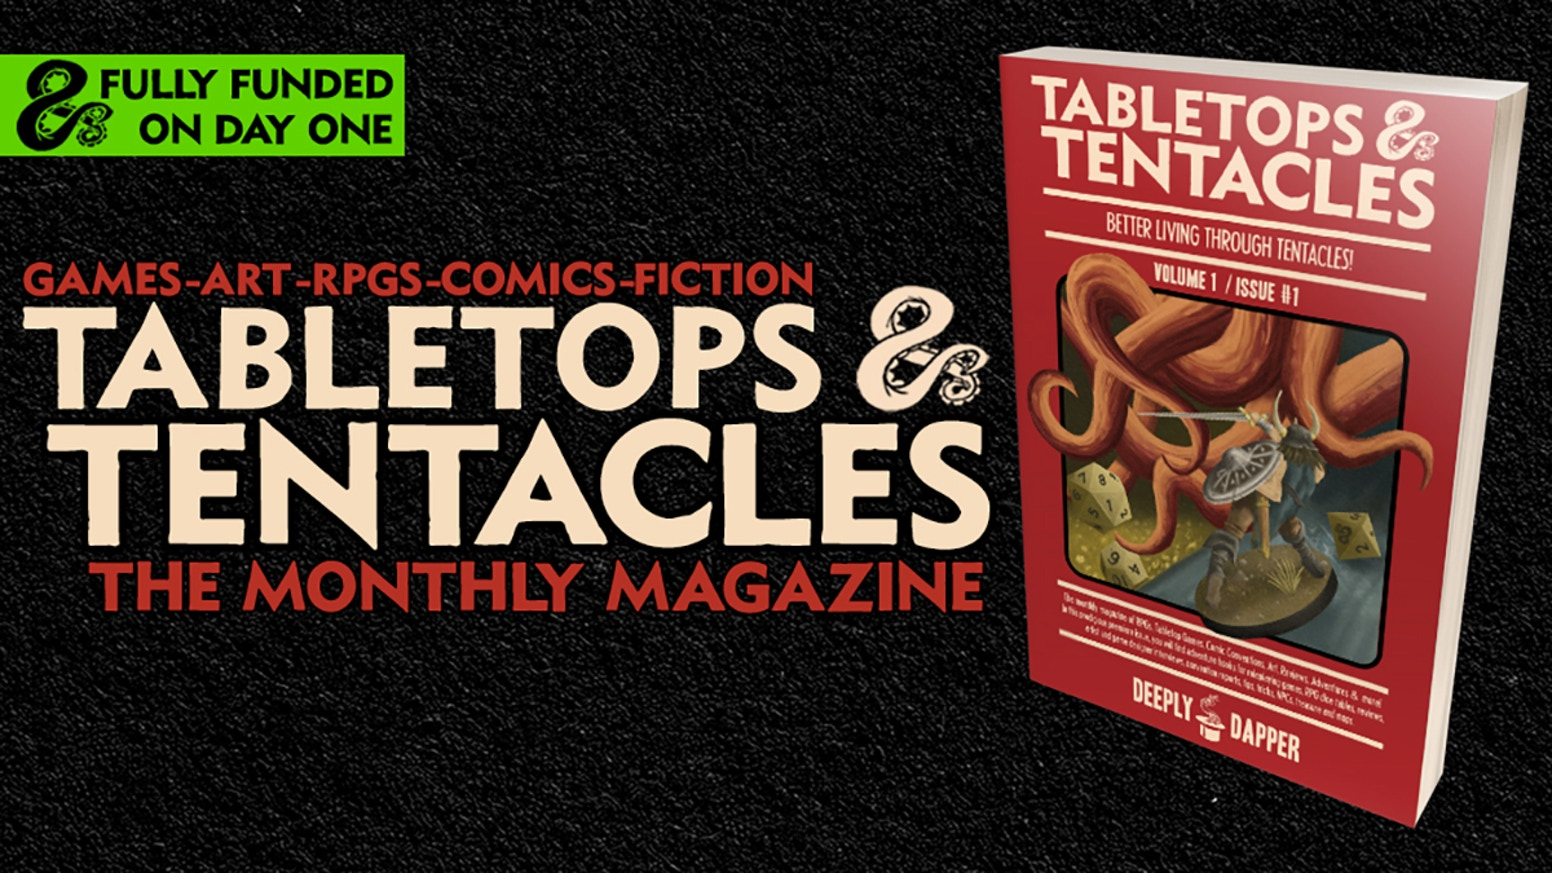 The Tabletop Game, RPG, Art, Short Fiction and Comic Book magazine from Deeply Dapper